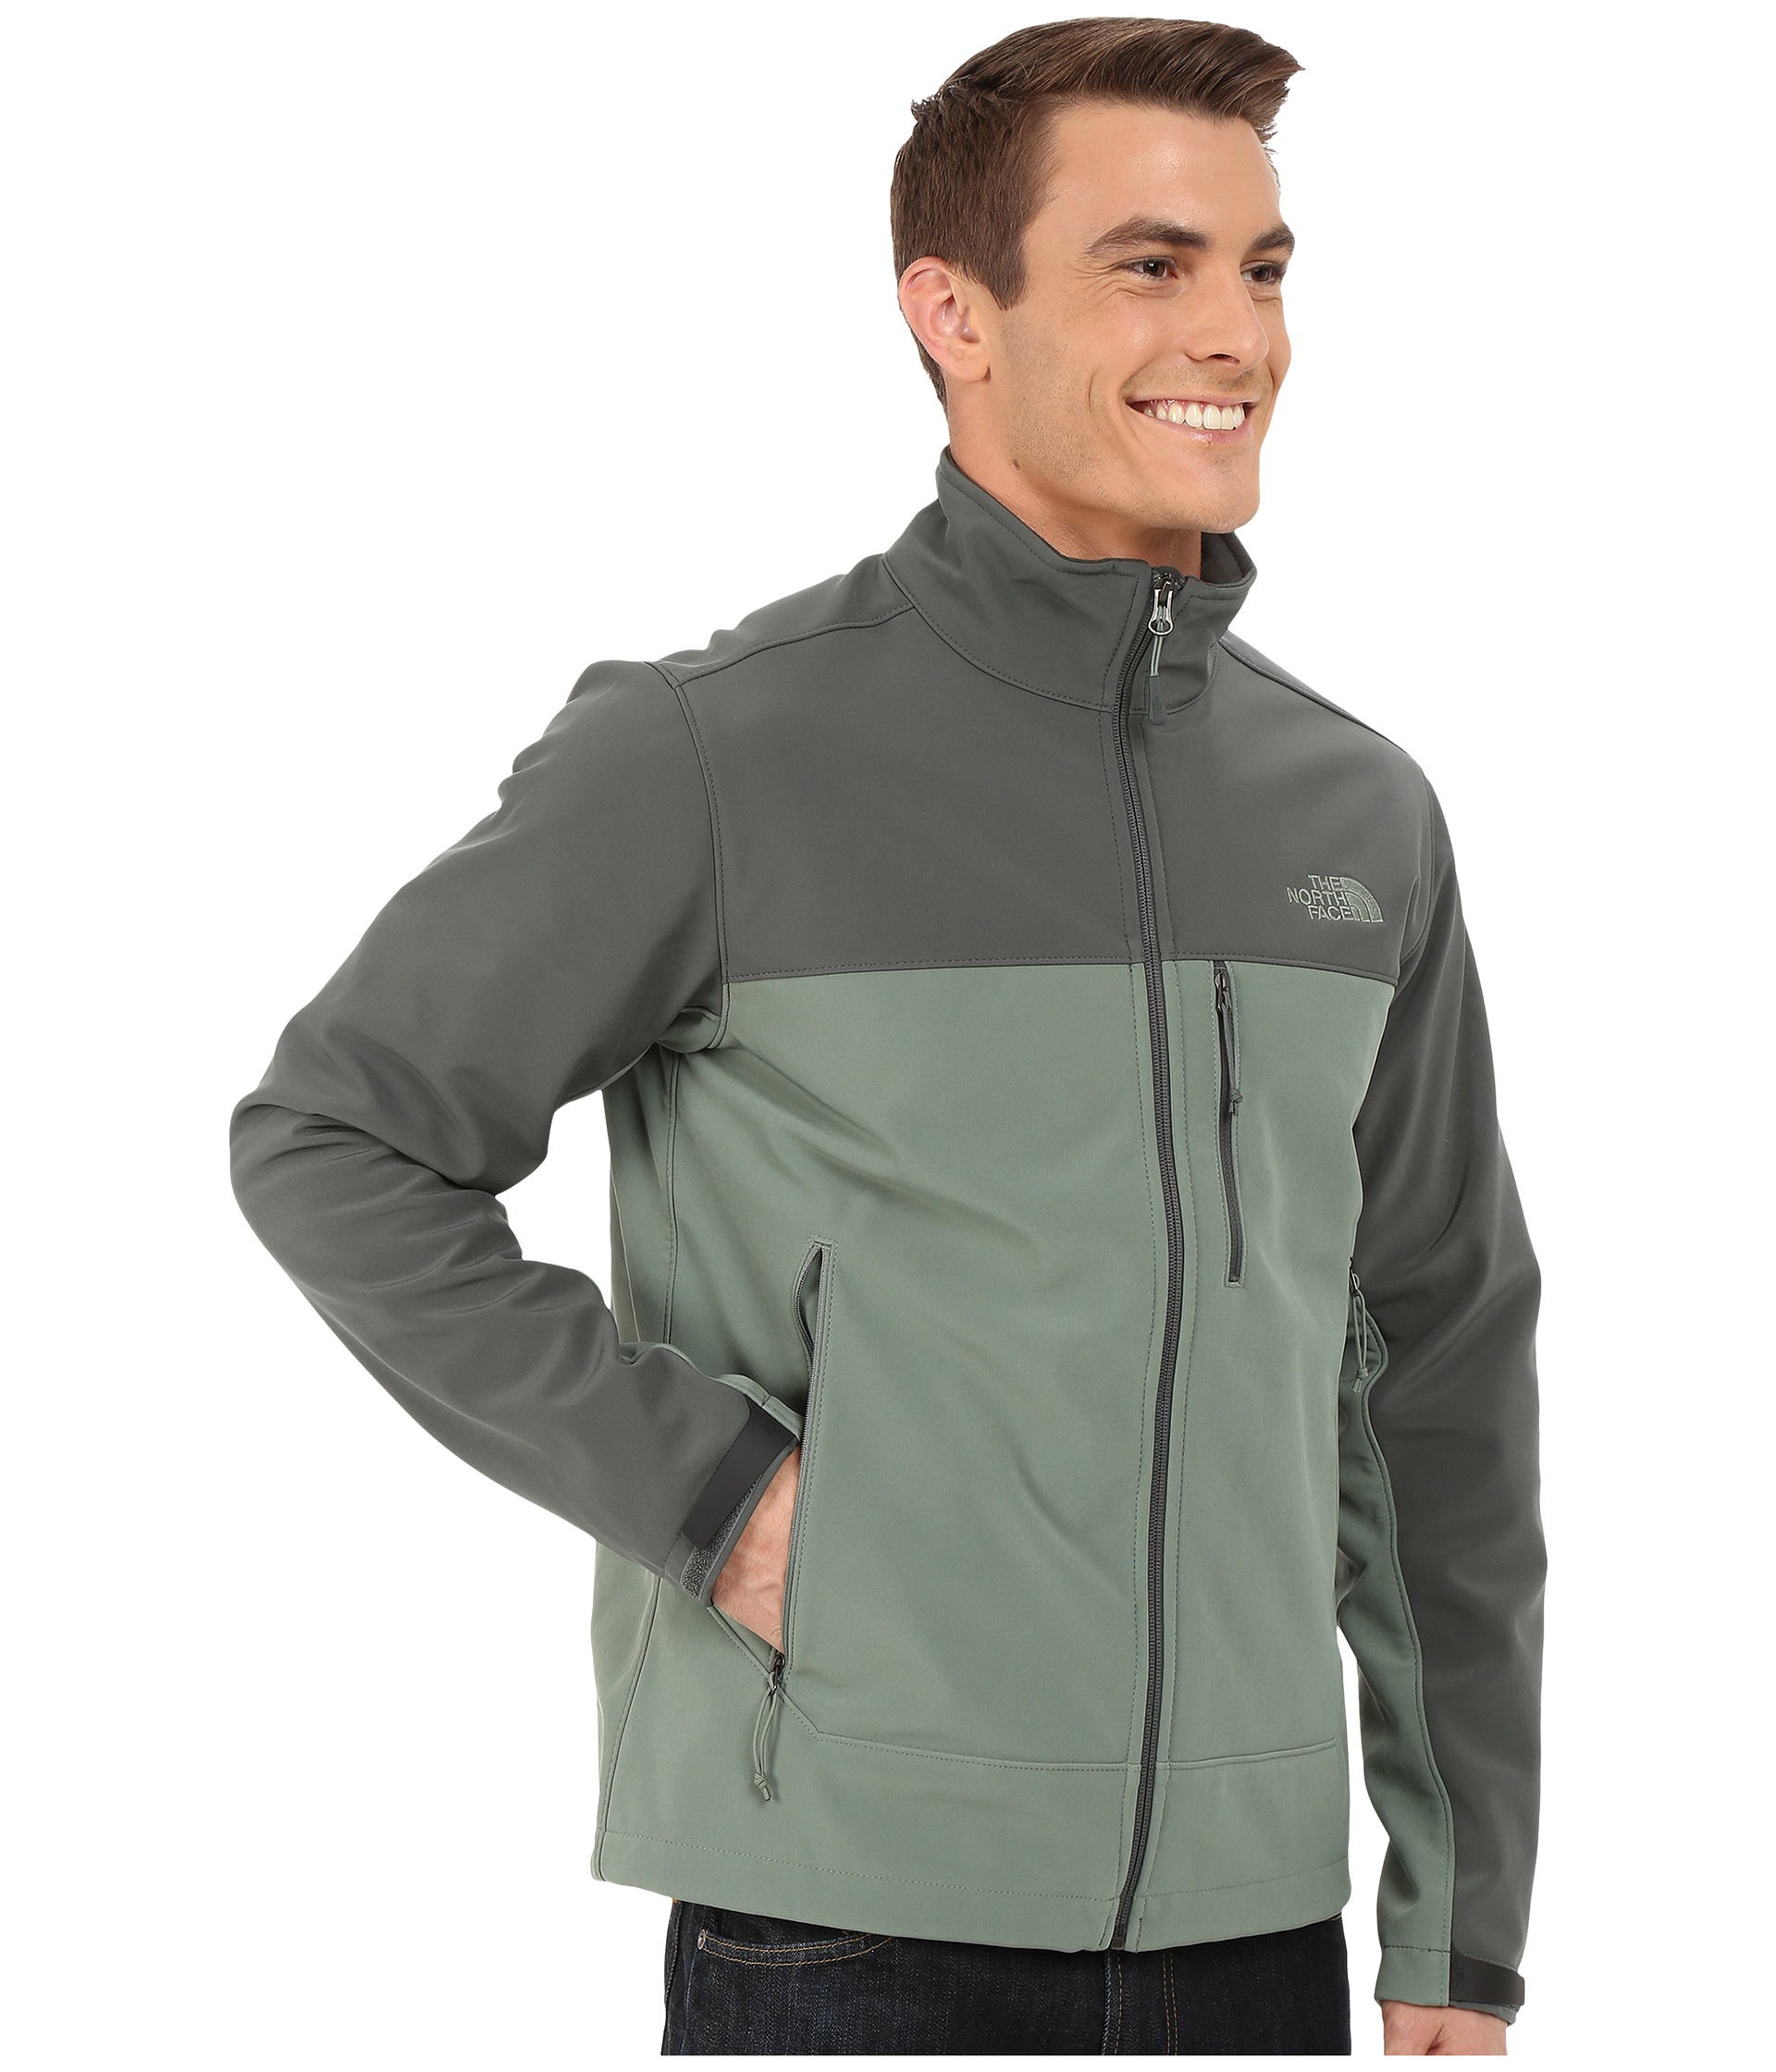 944fd3fd89 ... wholesale lyst the north face apex bionic jacket in green for men 45536  97f23